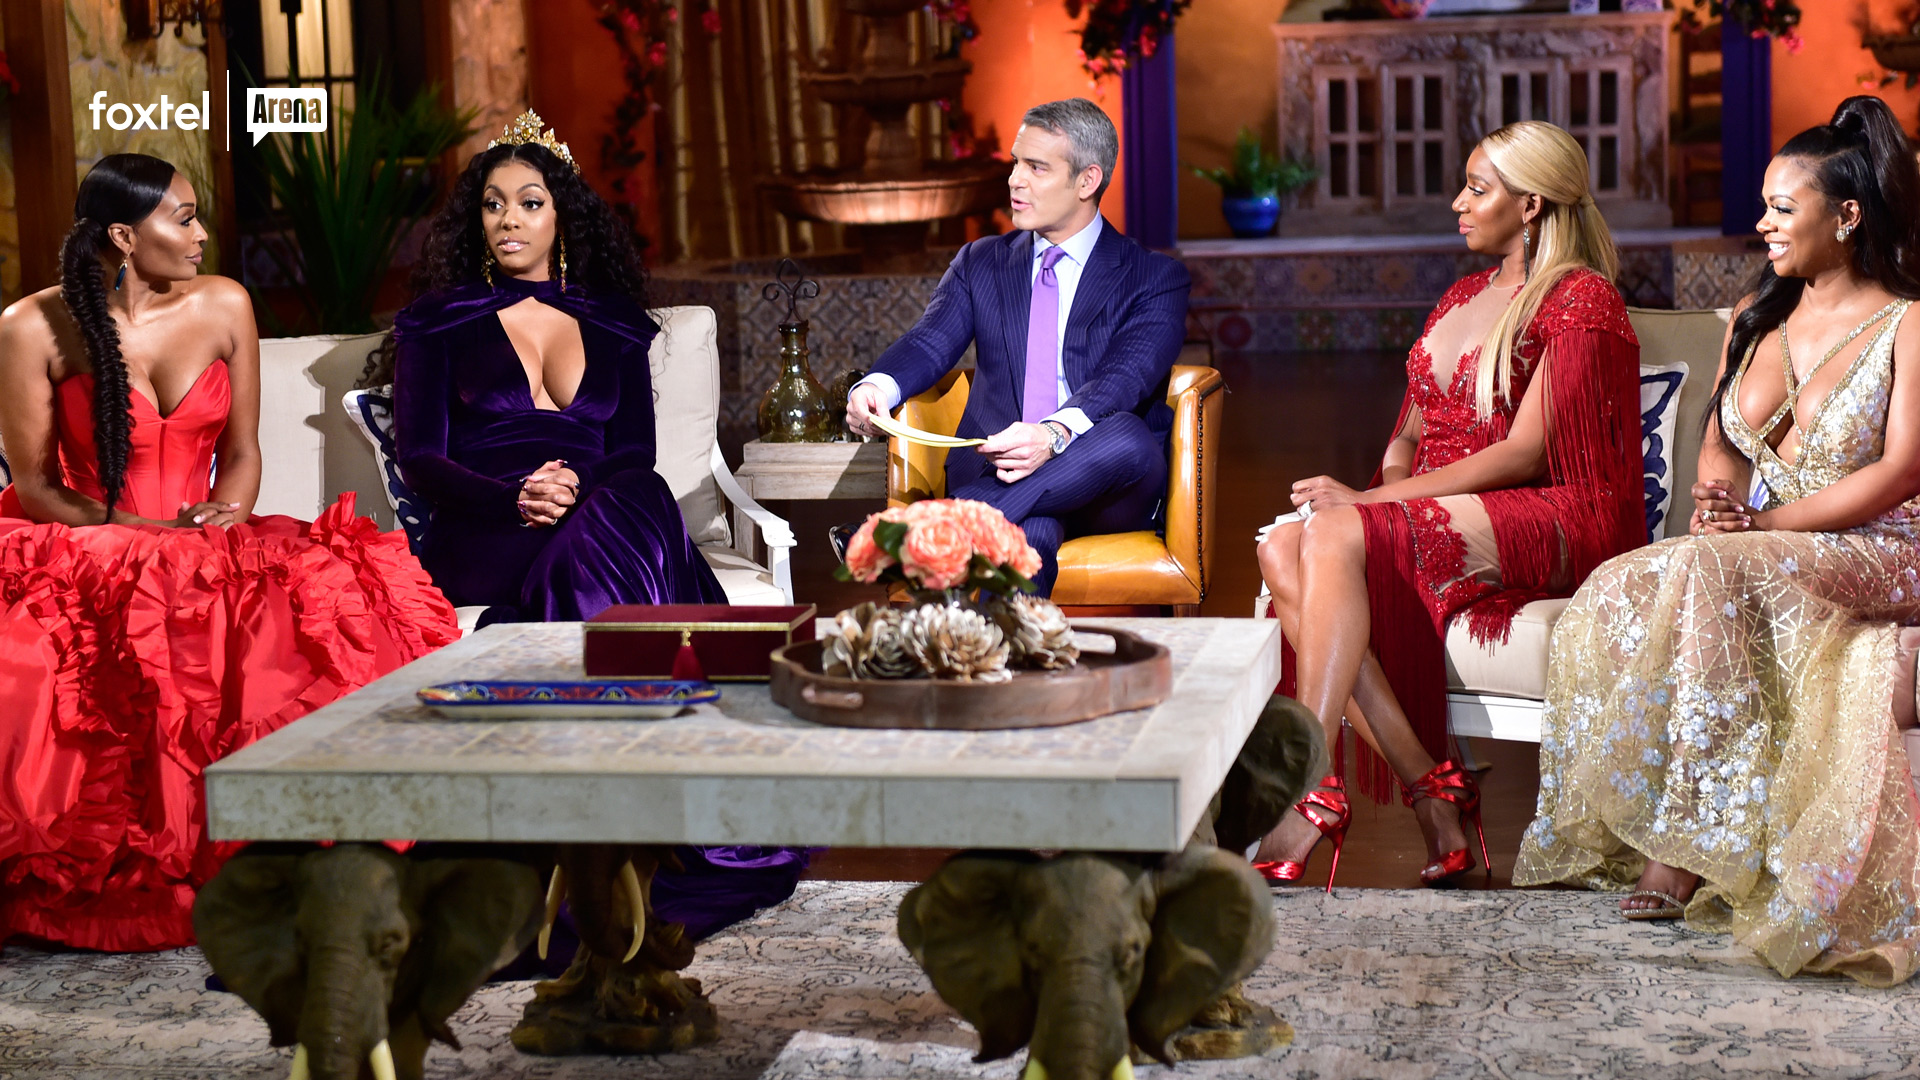 The Real Housewives Of Atlanta Serves Up A Fiery Three Part Reunion